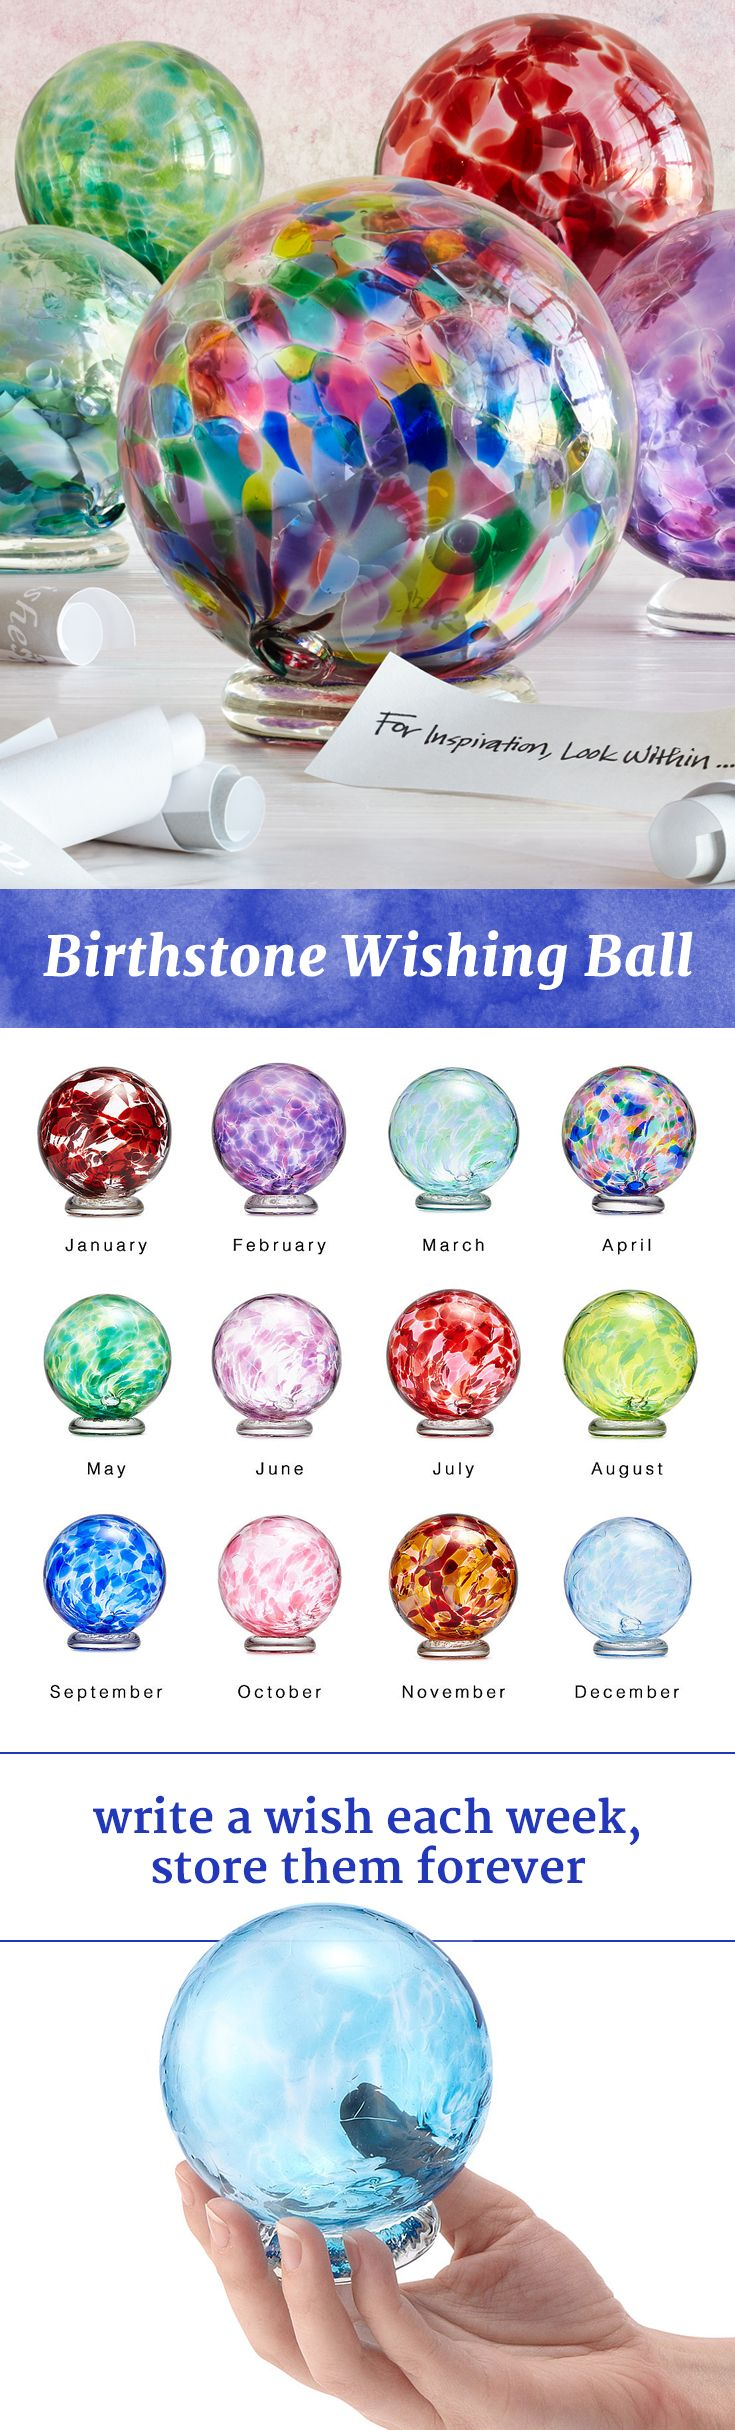 A birthday gift that lasts the whole year. Jill Henrietta Davis created her birthstone wishing ball to capture a single wish, accomplishment, or meditation every week for the coming year. Each shimmering ball of hand-blown glass comes with 52 tiny slips of paper for you to pause once a week throughout the year and record a message of hope or gratitude.